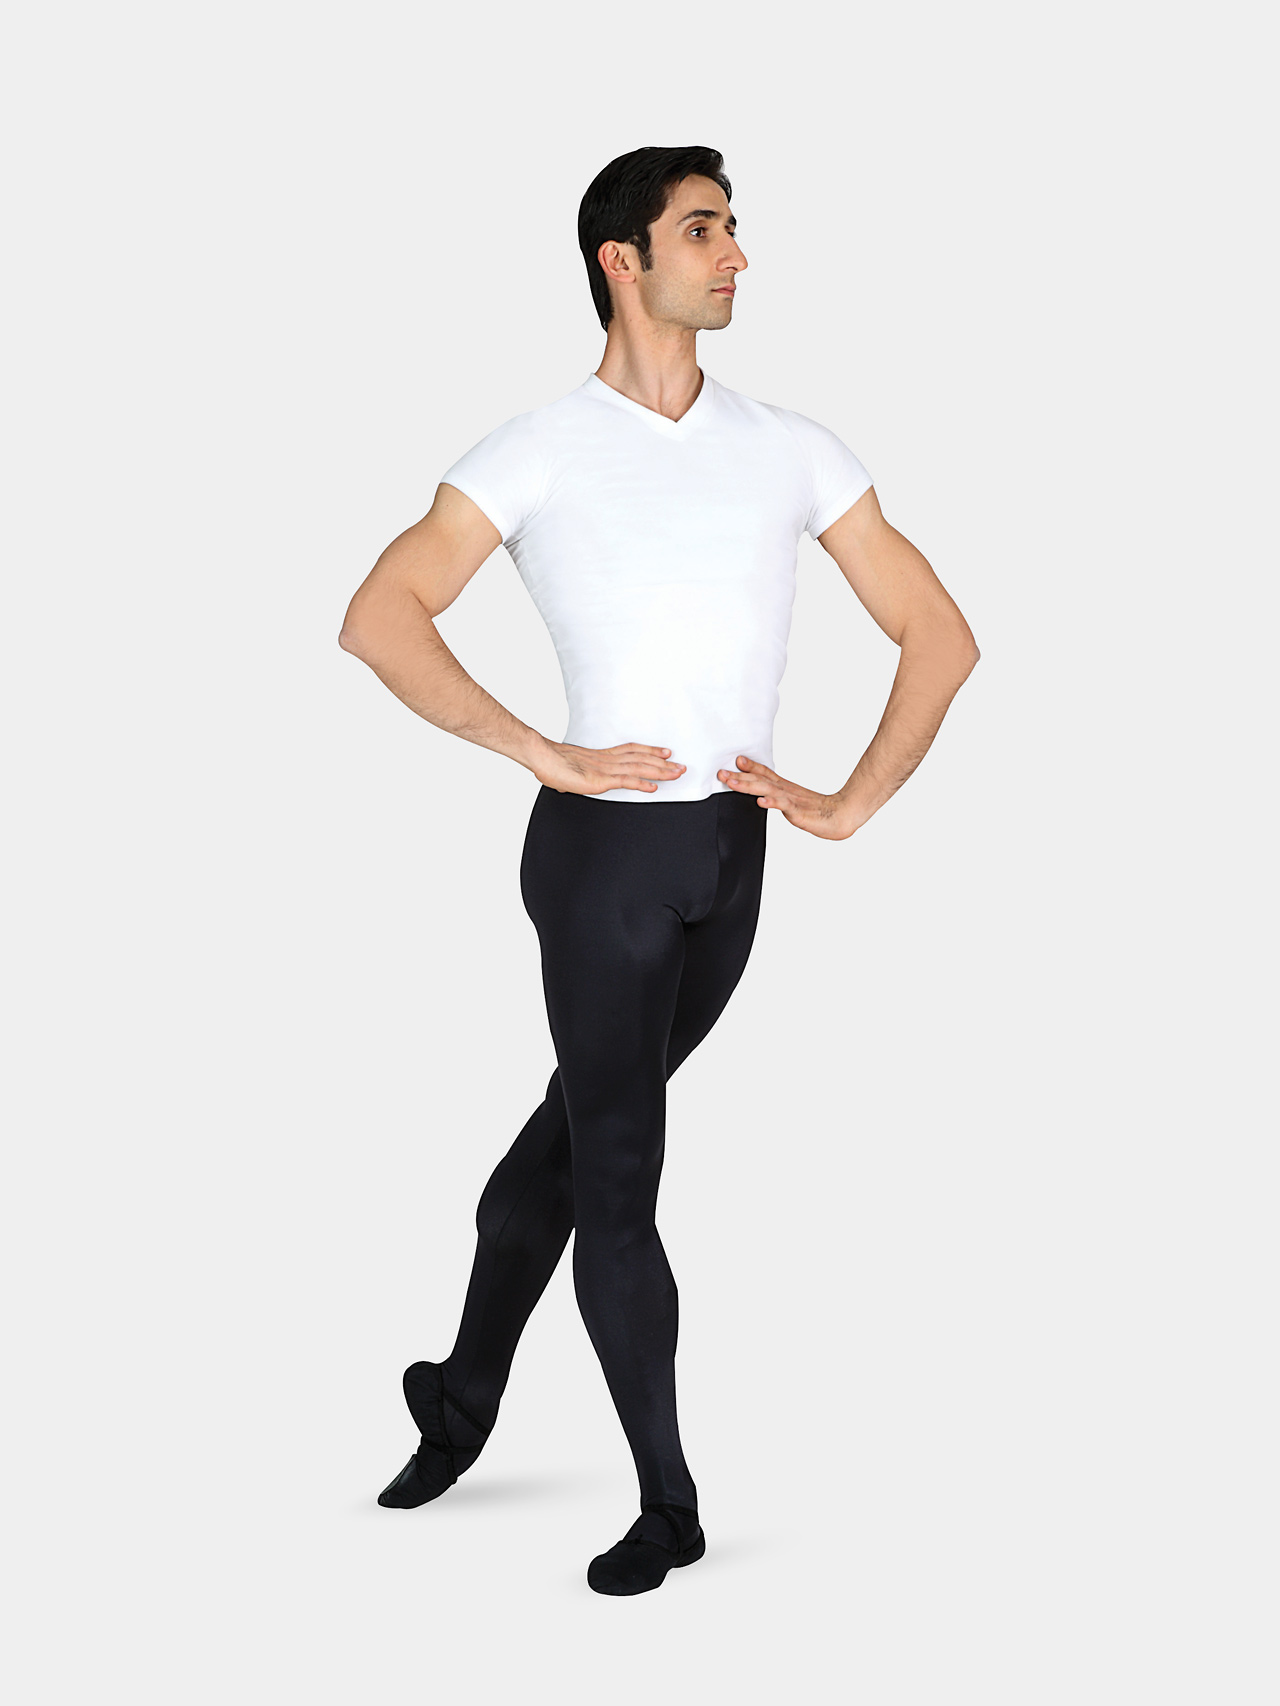 Mens Footed Tights by M. Stevens